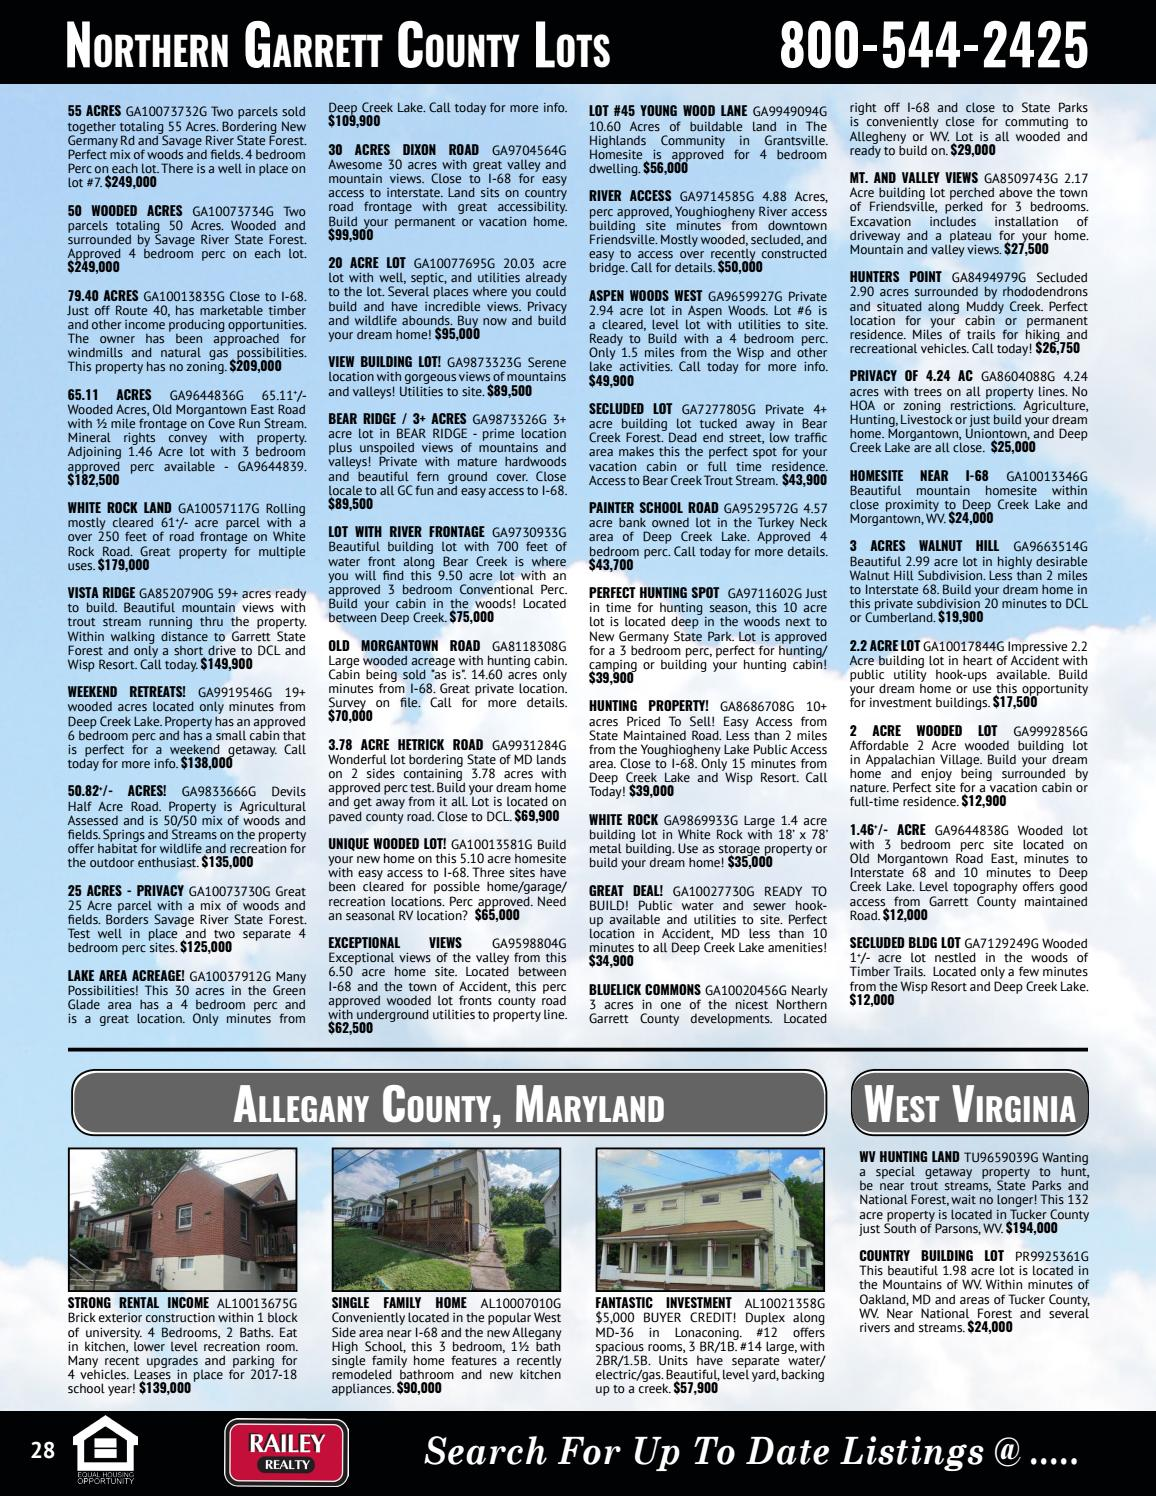 Railey Realty Winter & Spring 2018 Real Estate Guide by